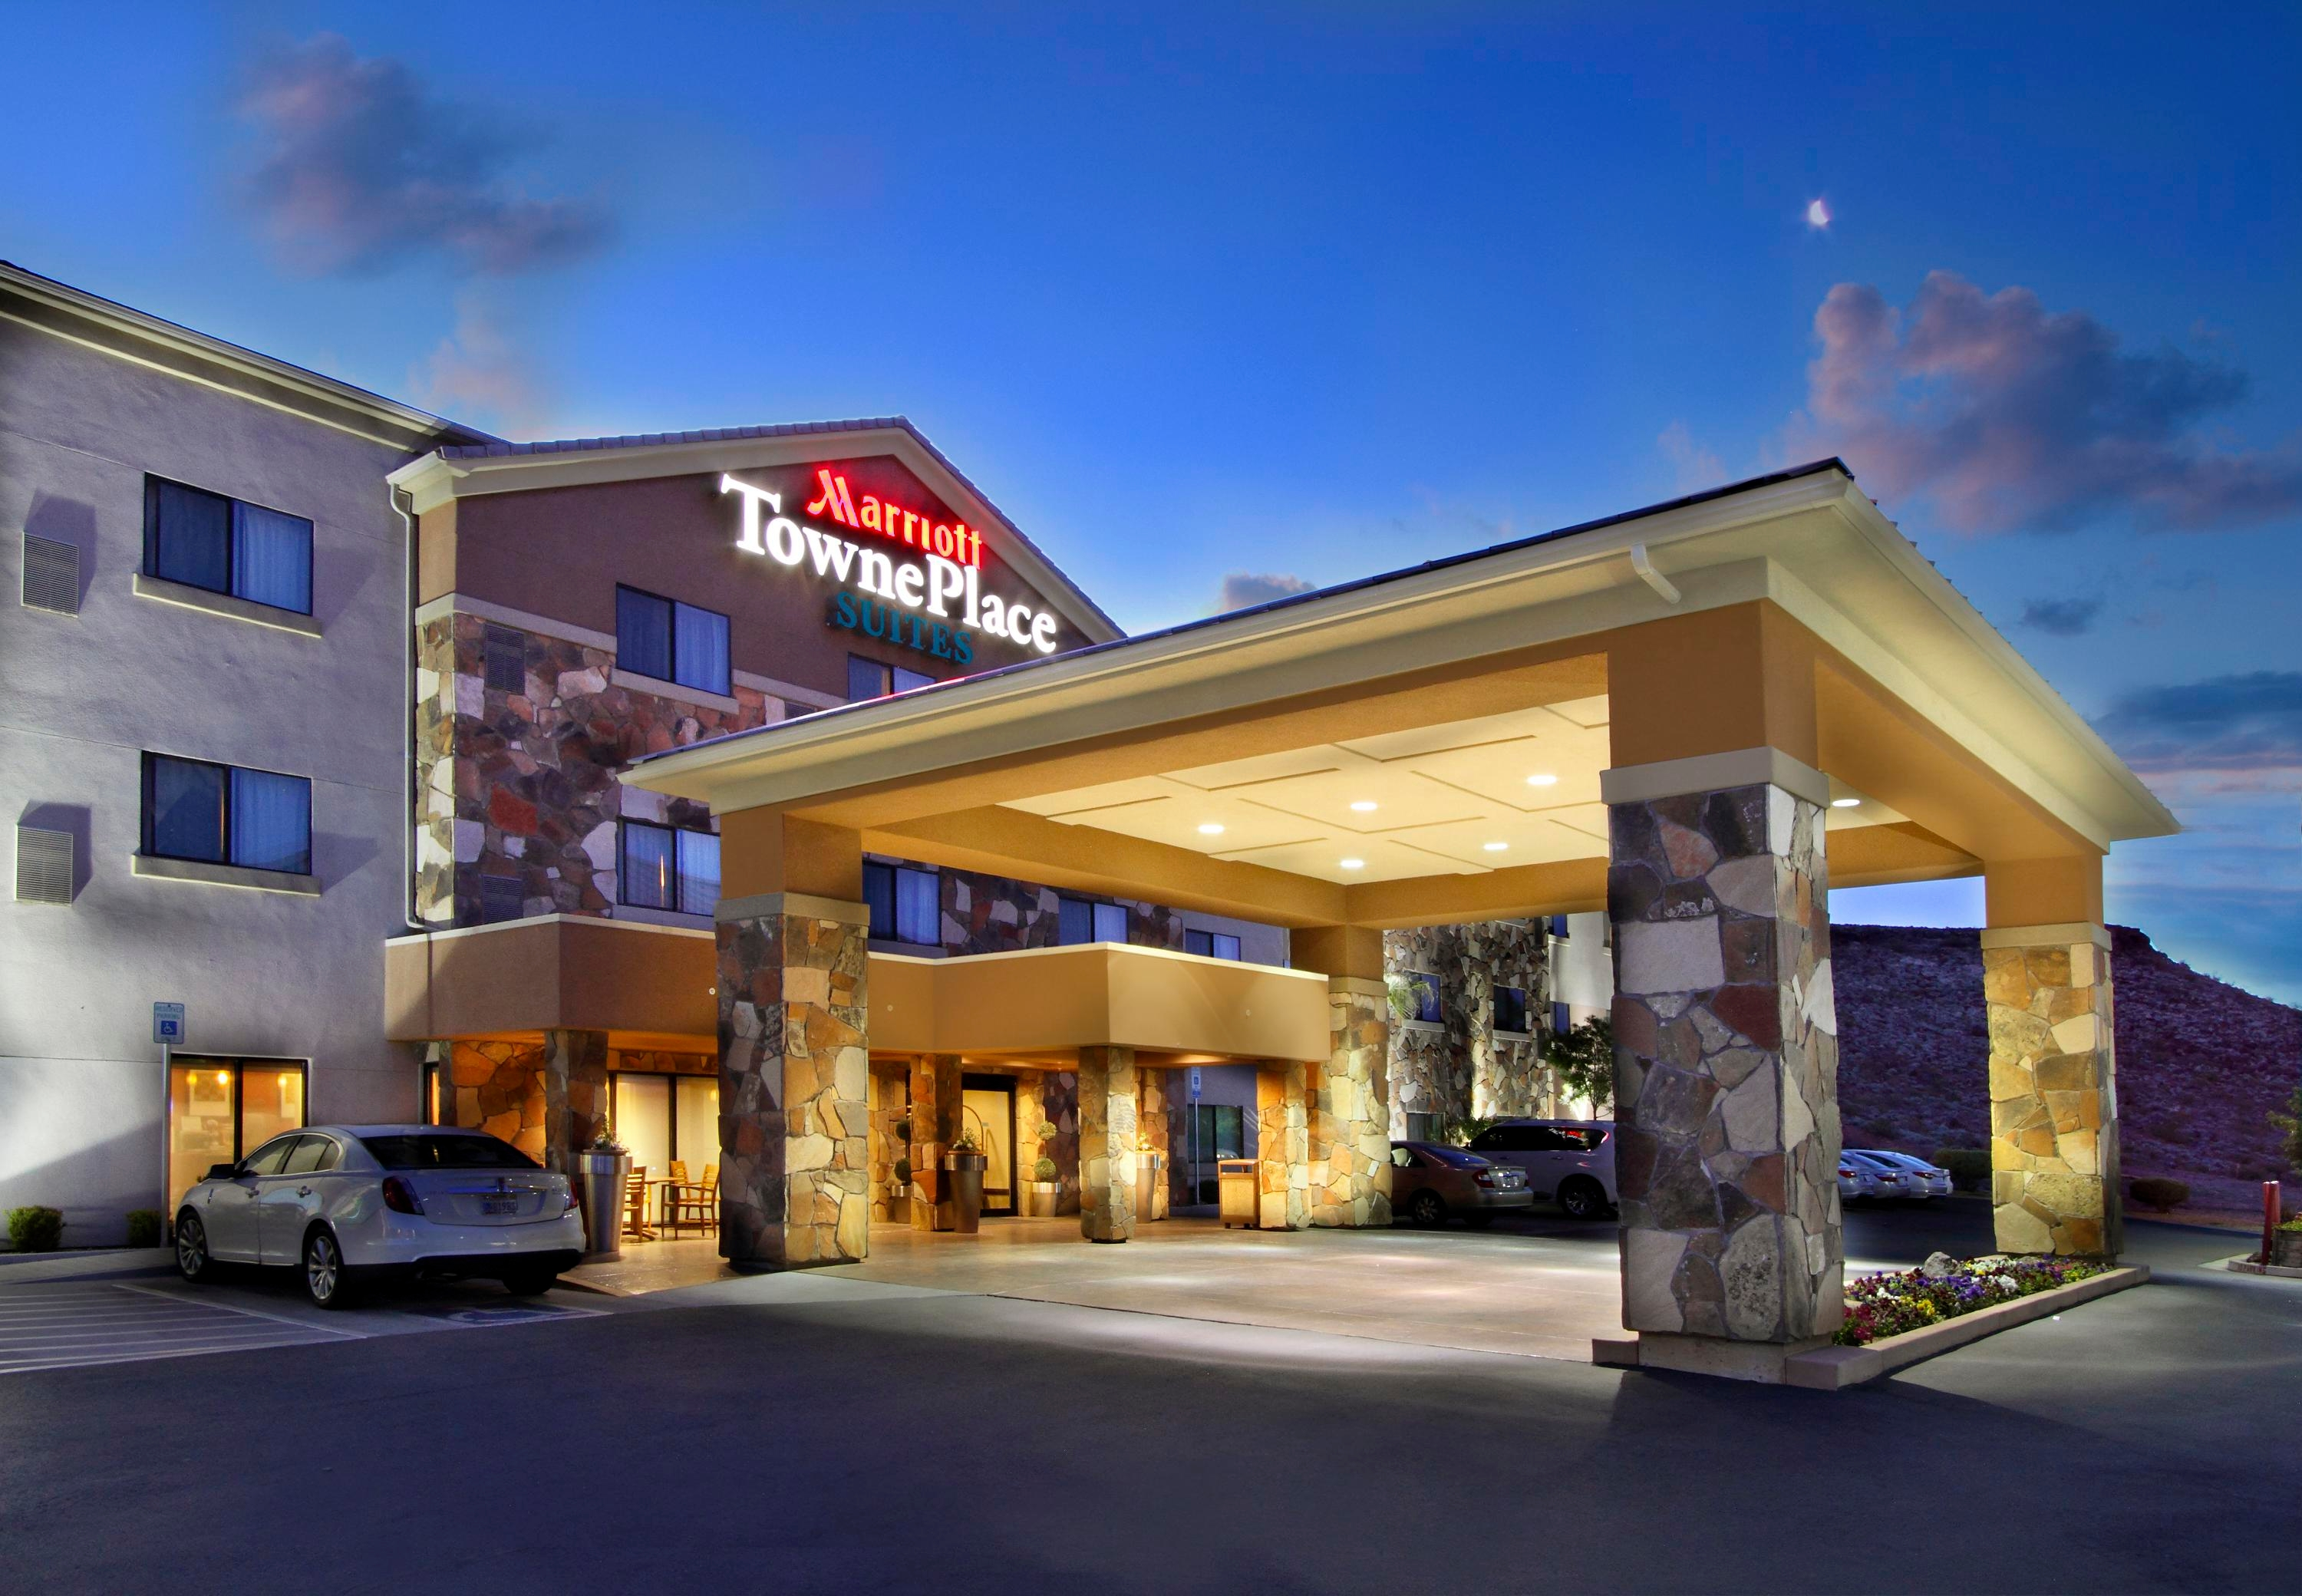 TownePlace Suites by Marriott St. George image 0